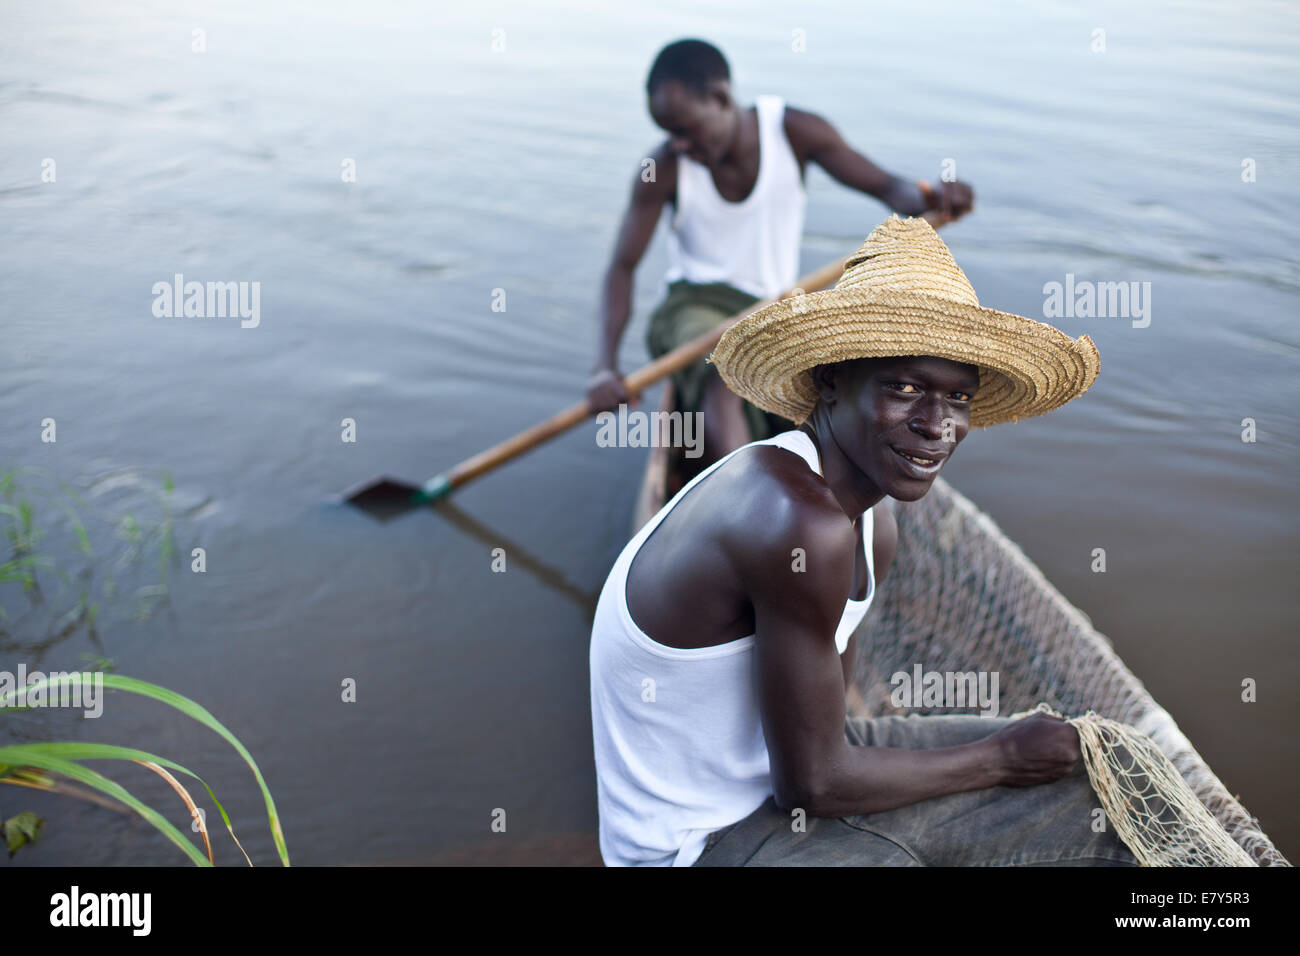 Young fisherman on a boat on The River Nile, South Sudan, Africa - Stock Image